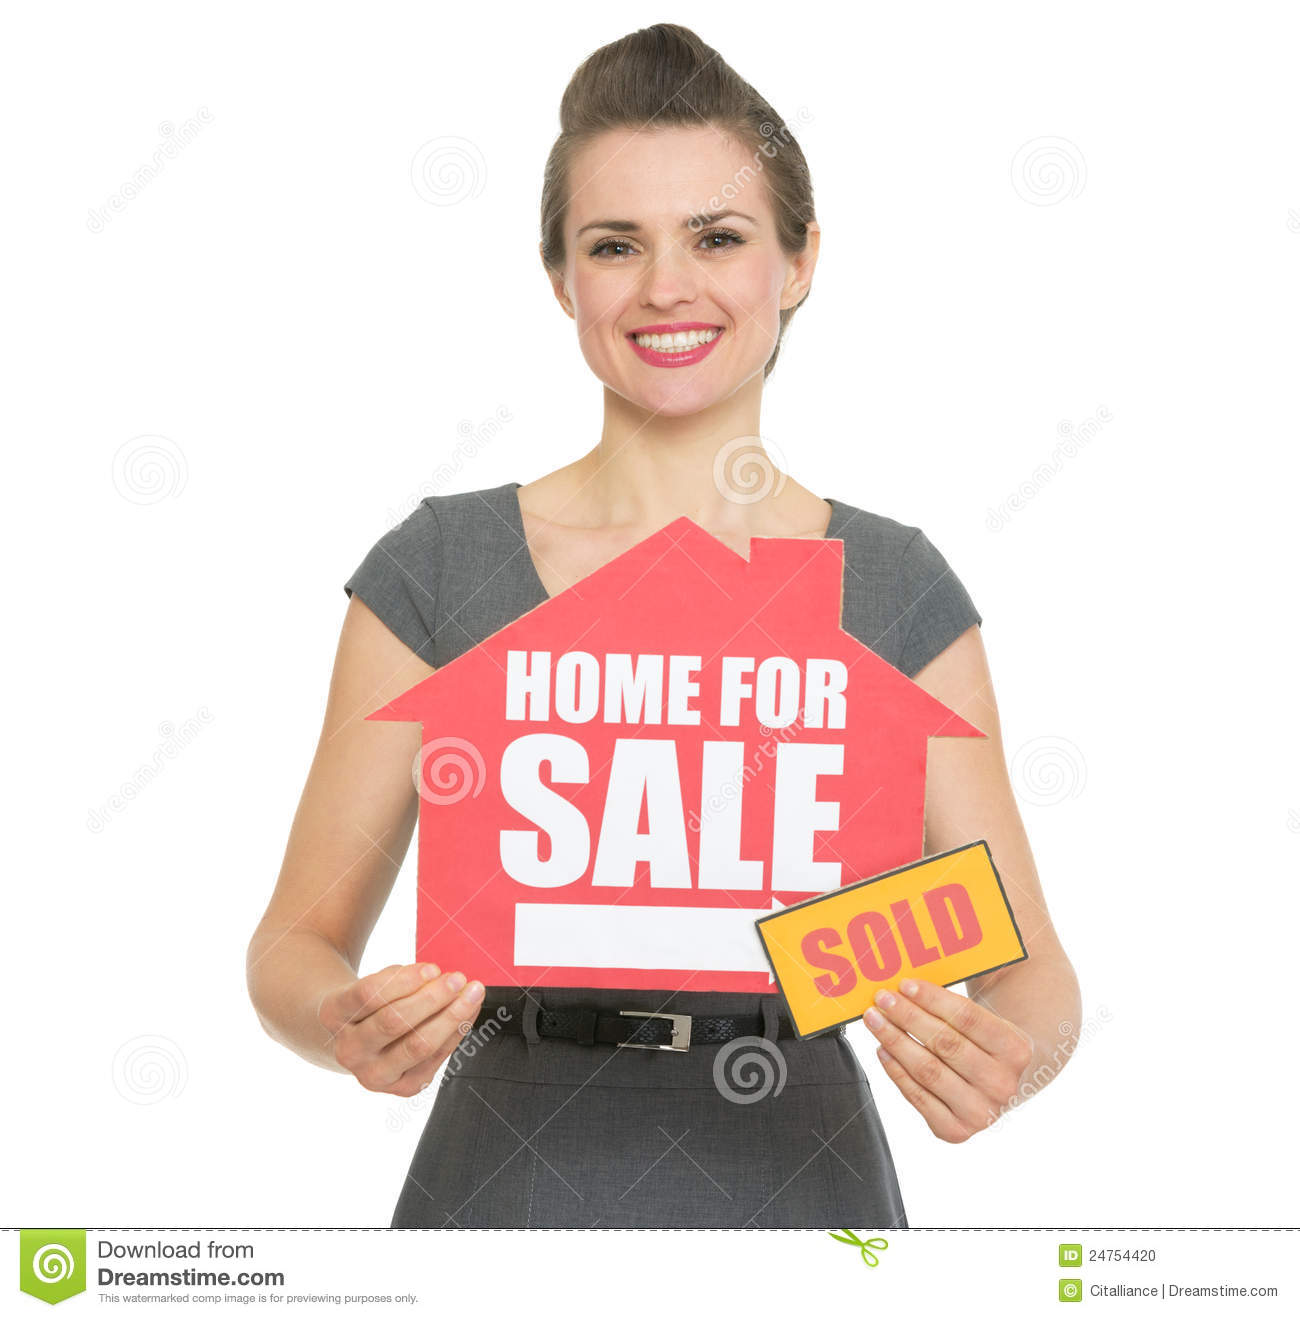 For Sale Sold Sign: Happy Realtor Showing Home For Sale Sold Sign Stock Photo